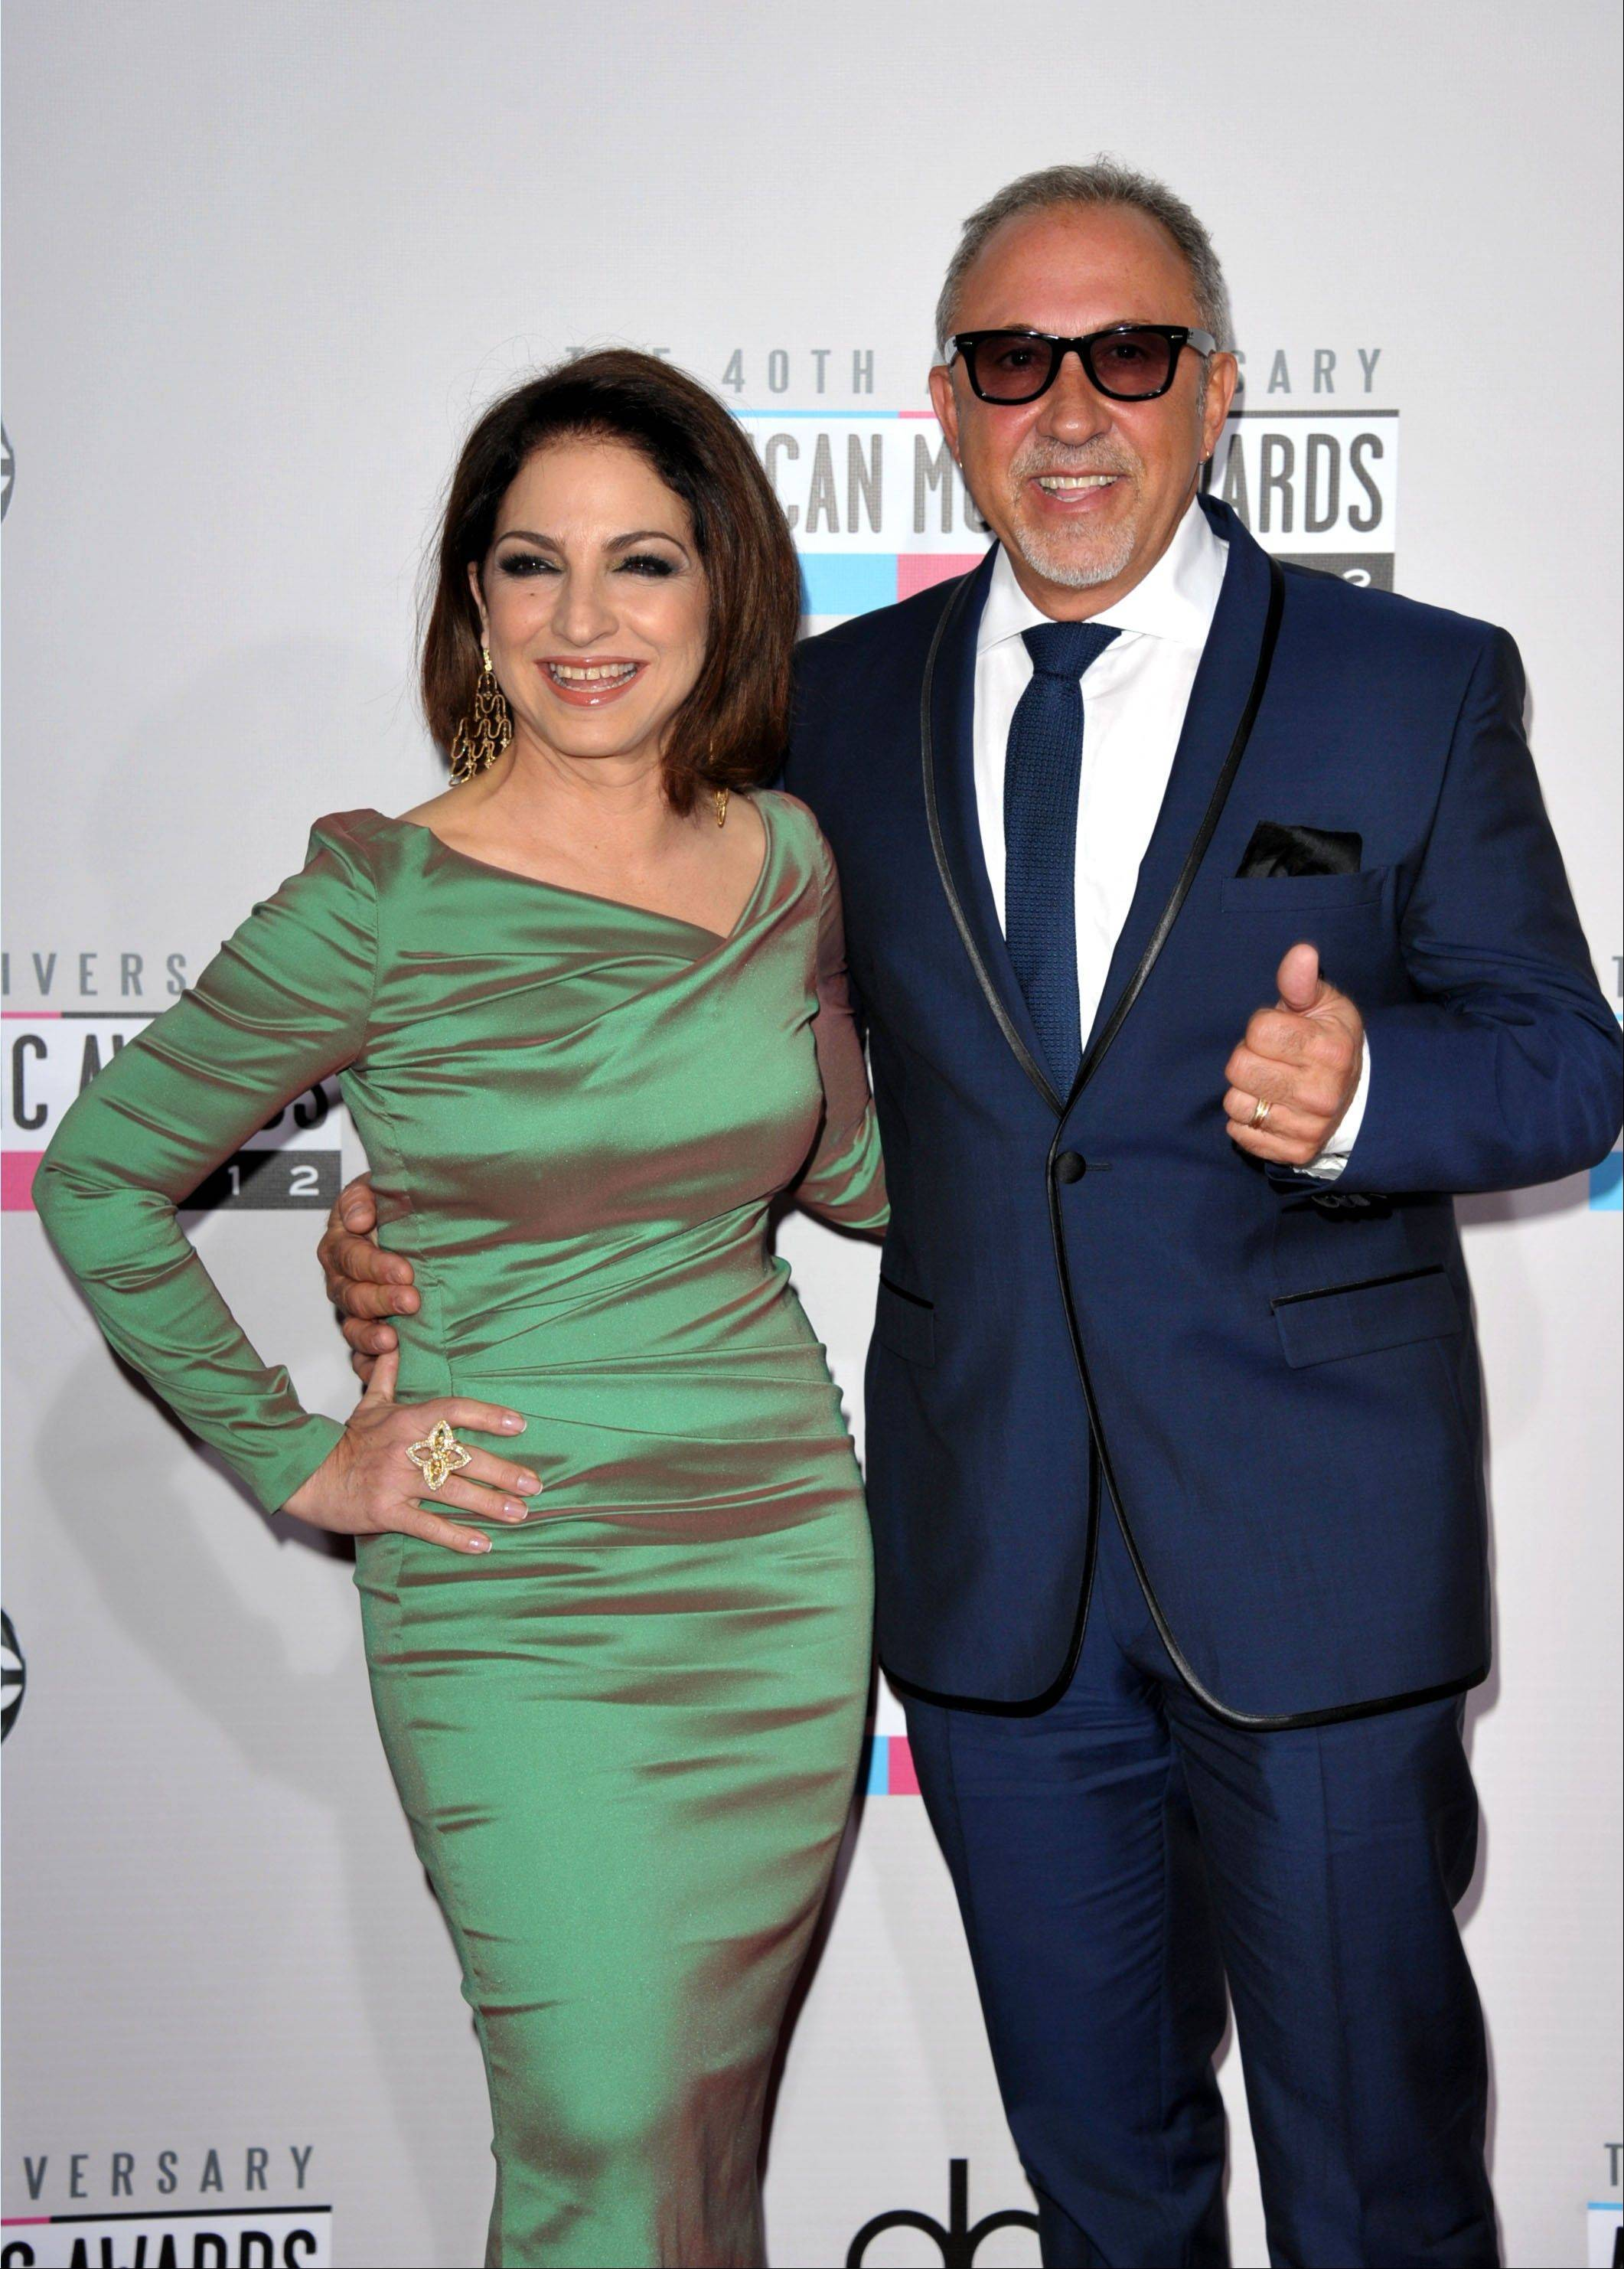 Gloria Estefan, left, and Emilio Estefan Jr. arrive at the 40th Anniversary American Music Awards on Sunday, Nov. 18, 2012, in Los Angeles.